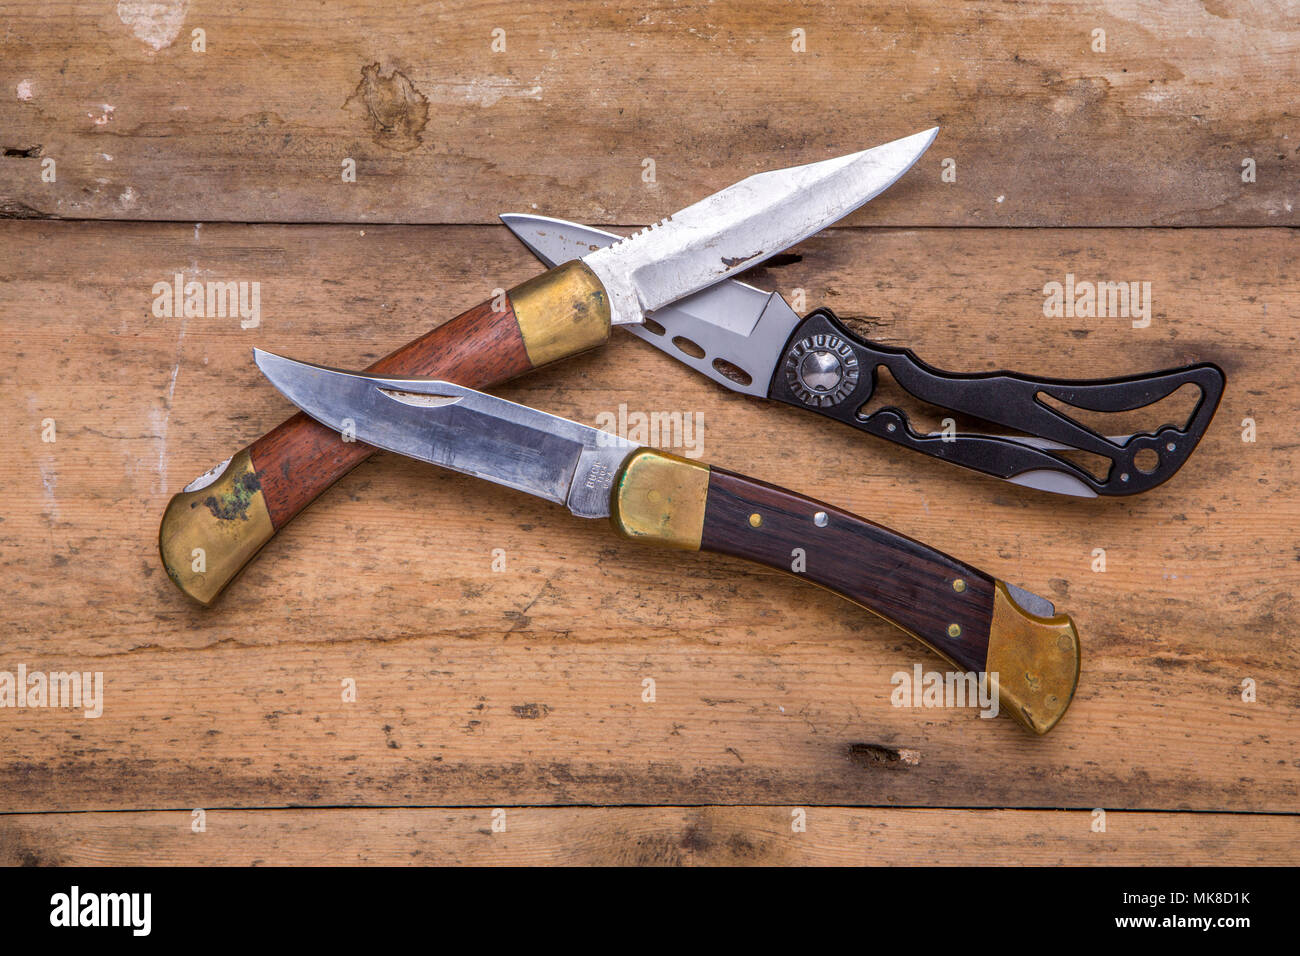 A collection of pocket knives - Stock Image